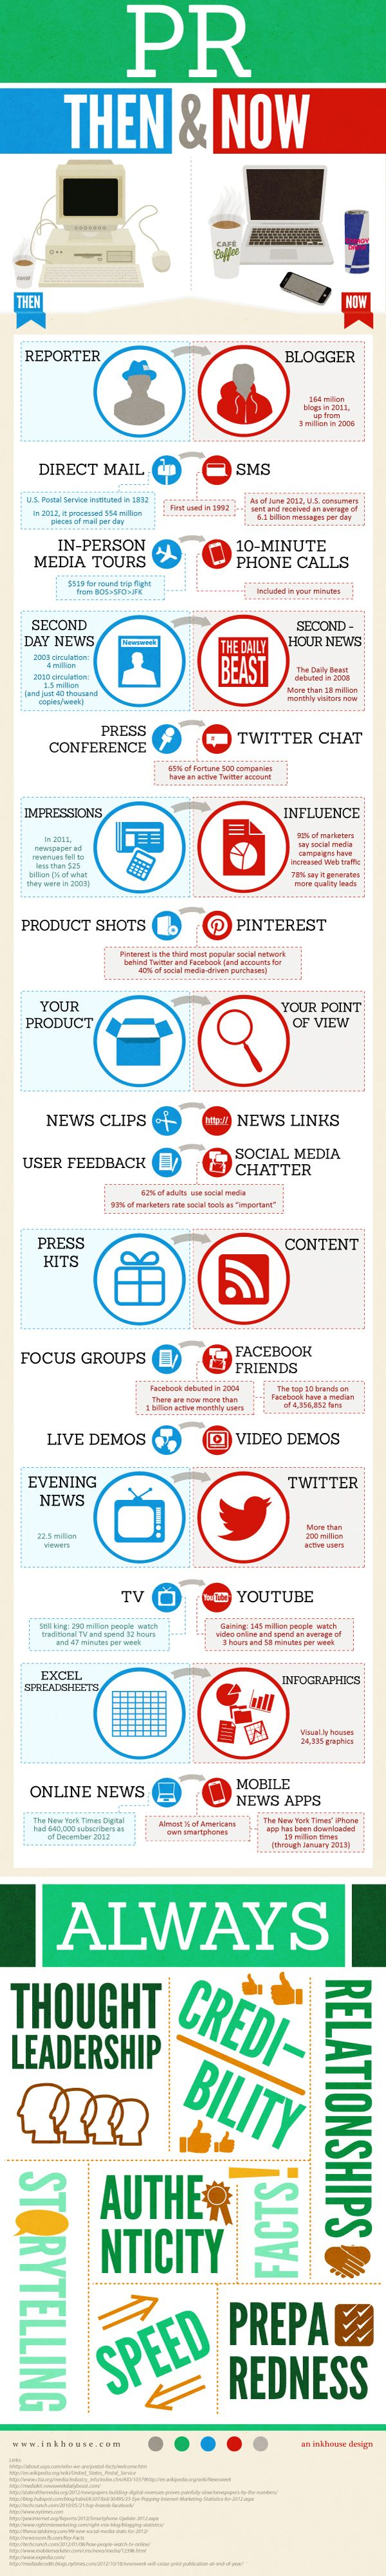 PR: Then and Now - I recently came across the below infographic that highlights all the changes we've seen in PR and communications within the last couple years. I know you'll enjoy this one! Take a look...